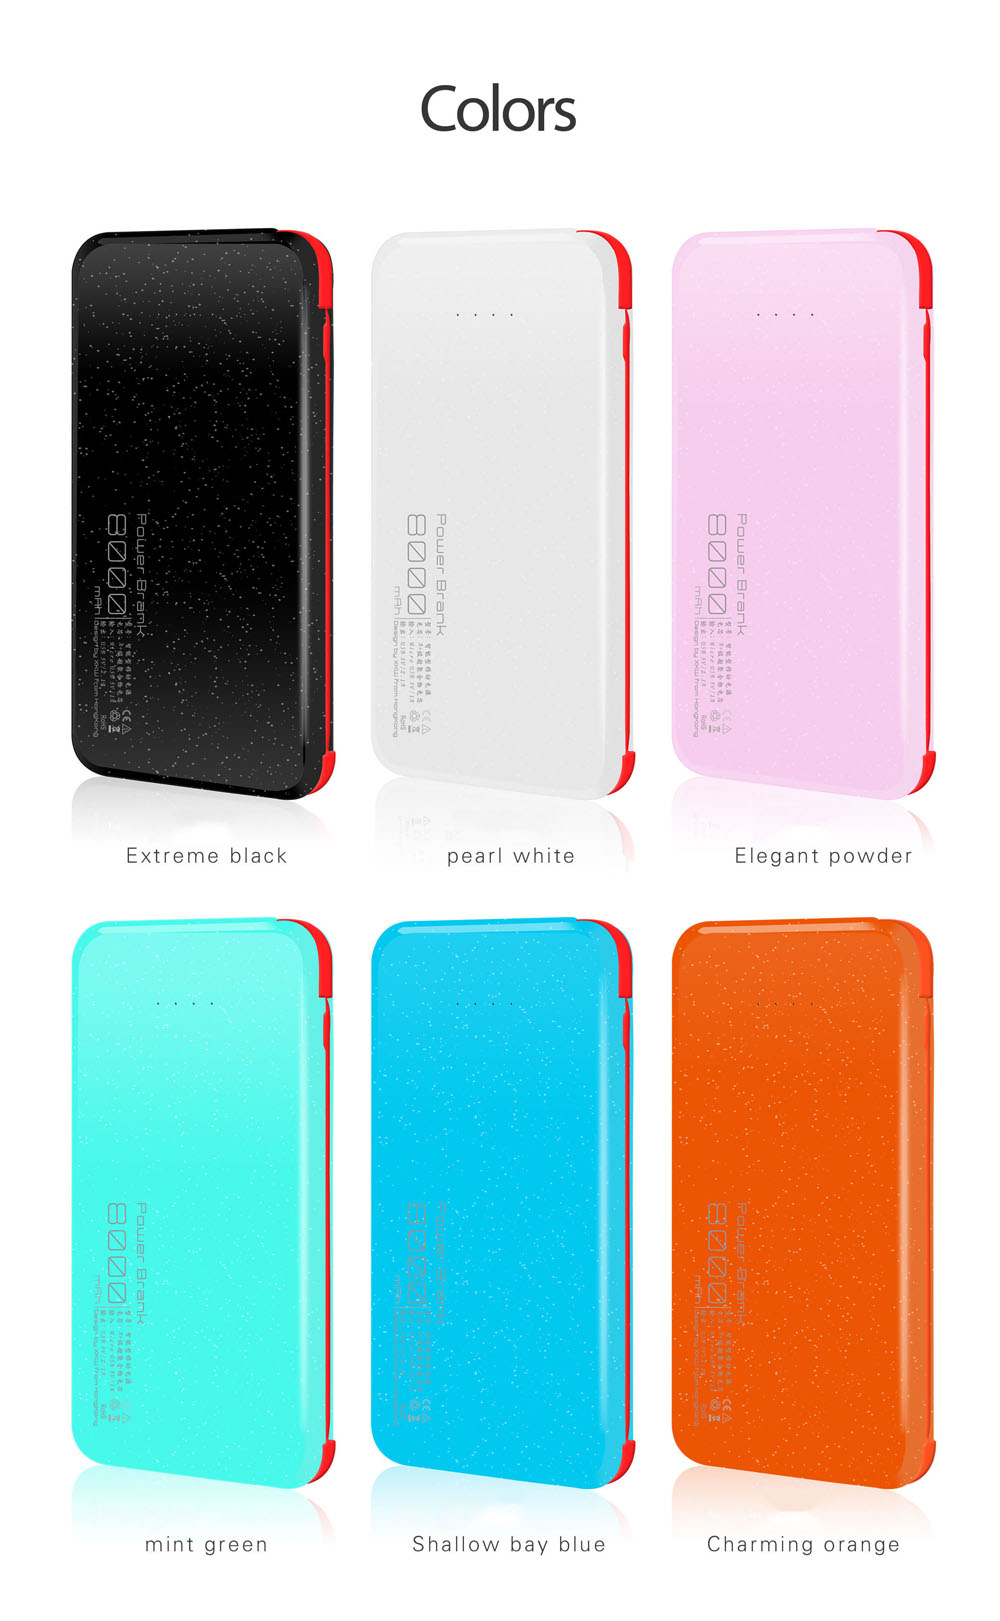 SE15-Universal-8000mAh-With-Charging-Cable-Micro-USB-Lightning-For-iPhone-5s-6s-7-Plus-SE-Samsung-IOS-Android-Mobile-Phones-Pad- (9)